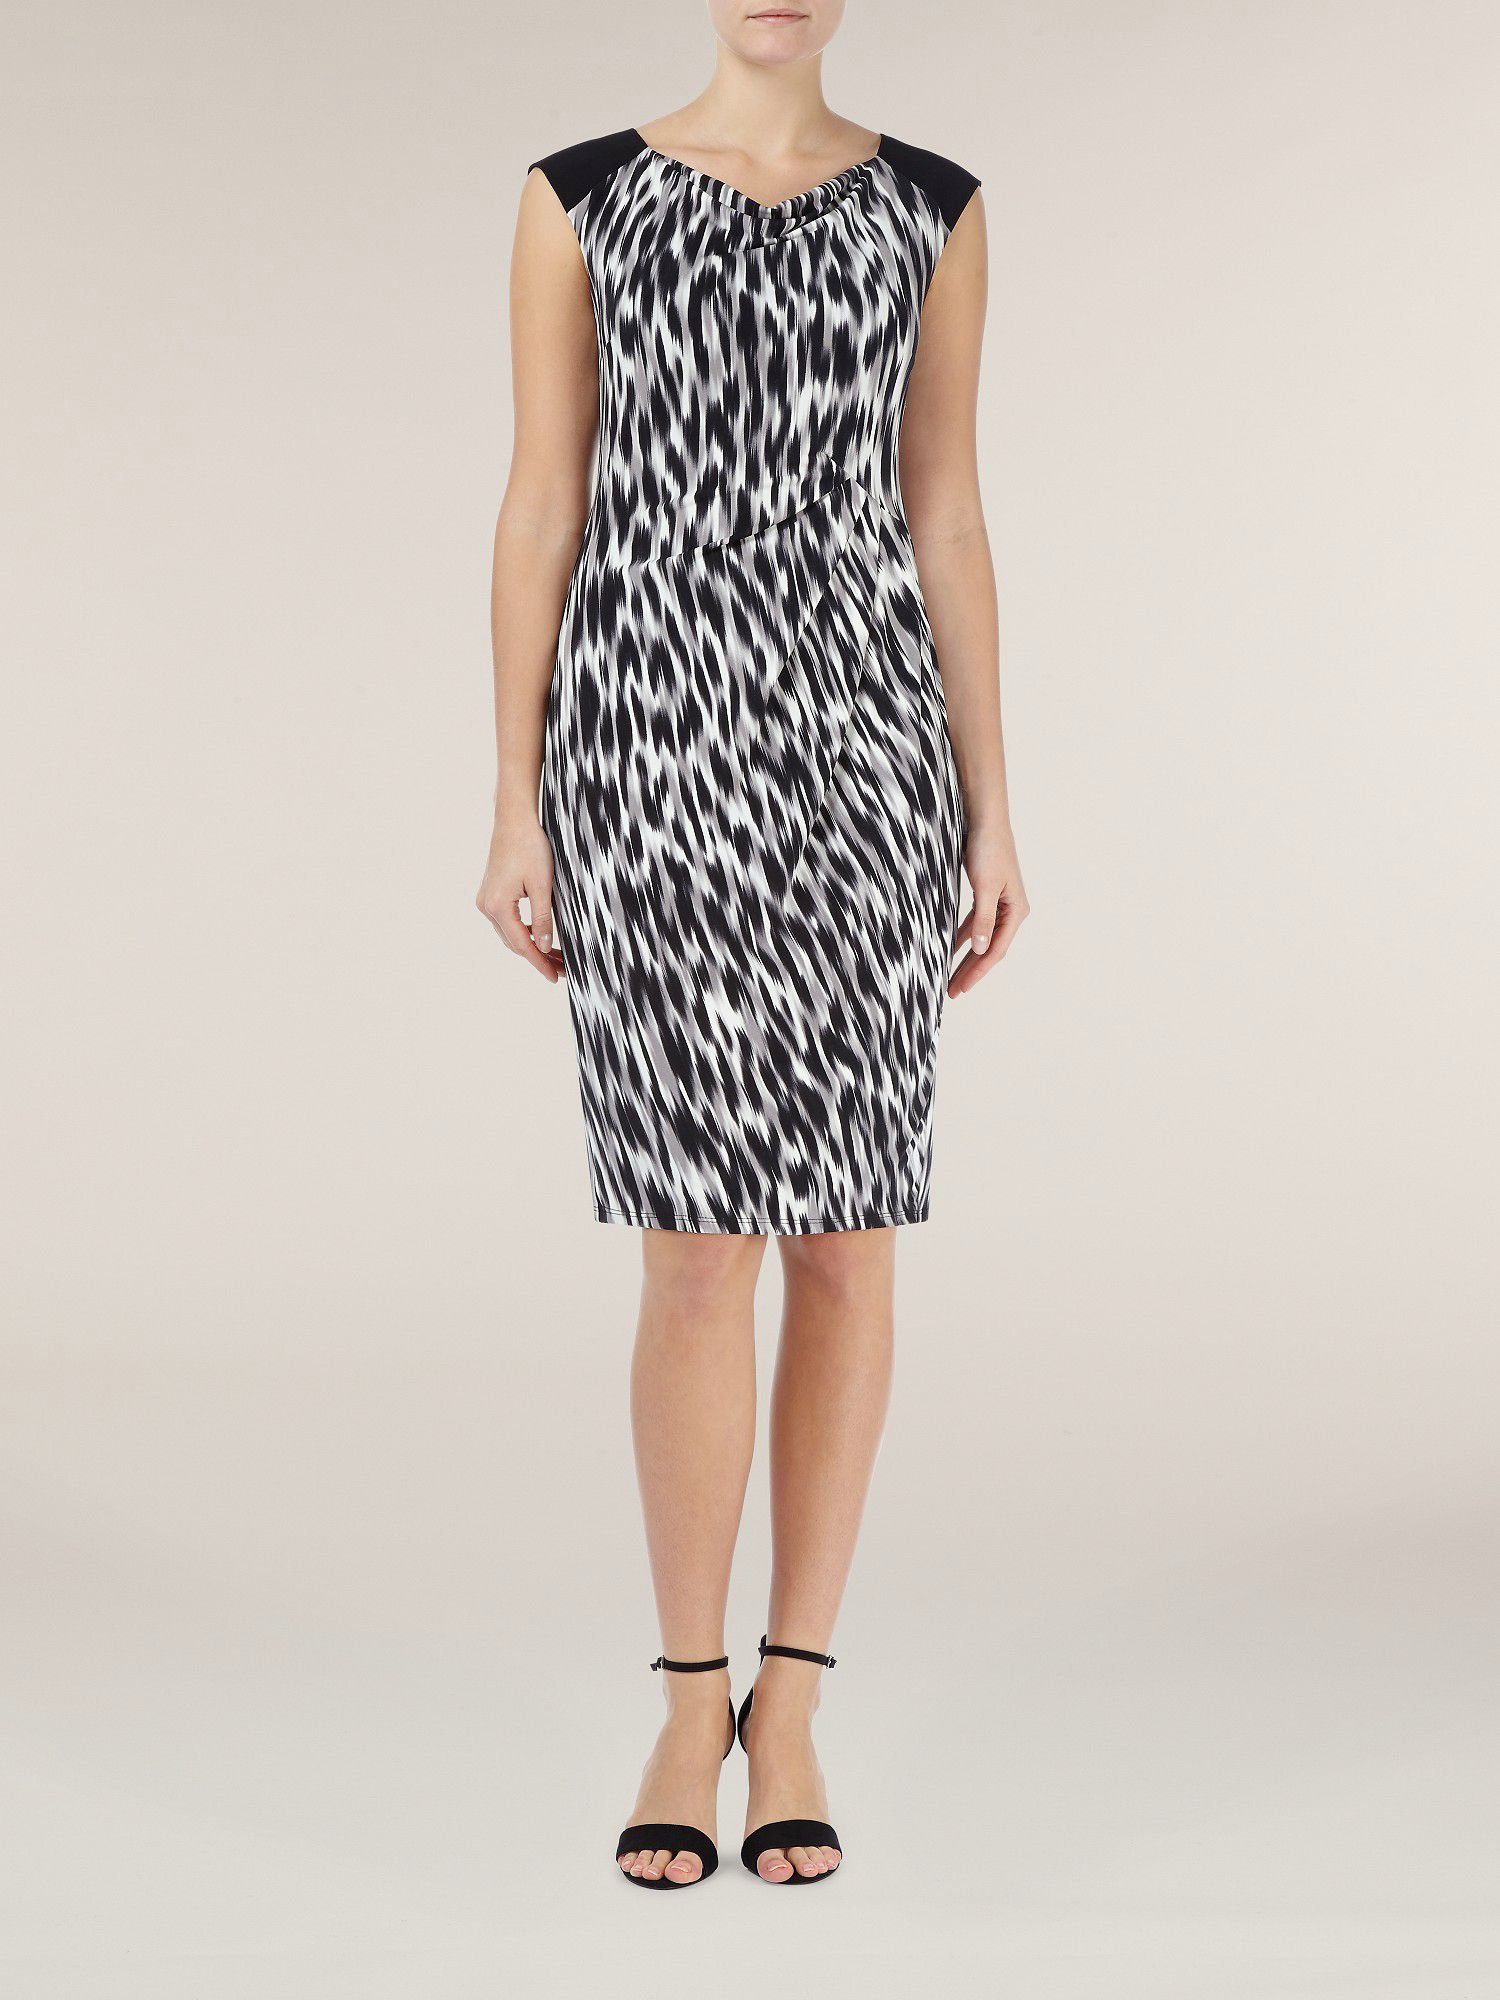 Hazy animal print dress